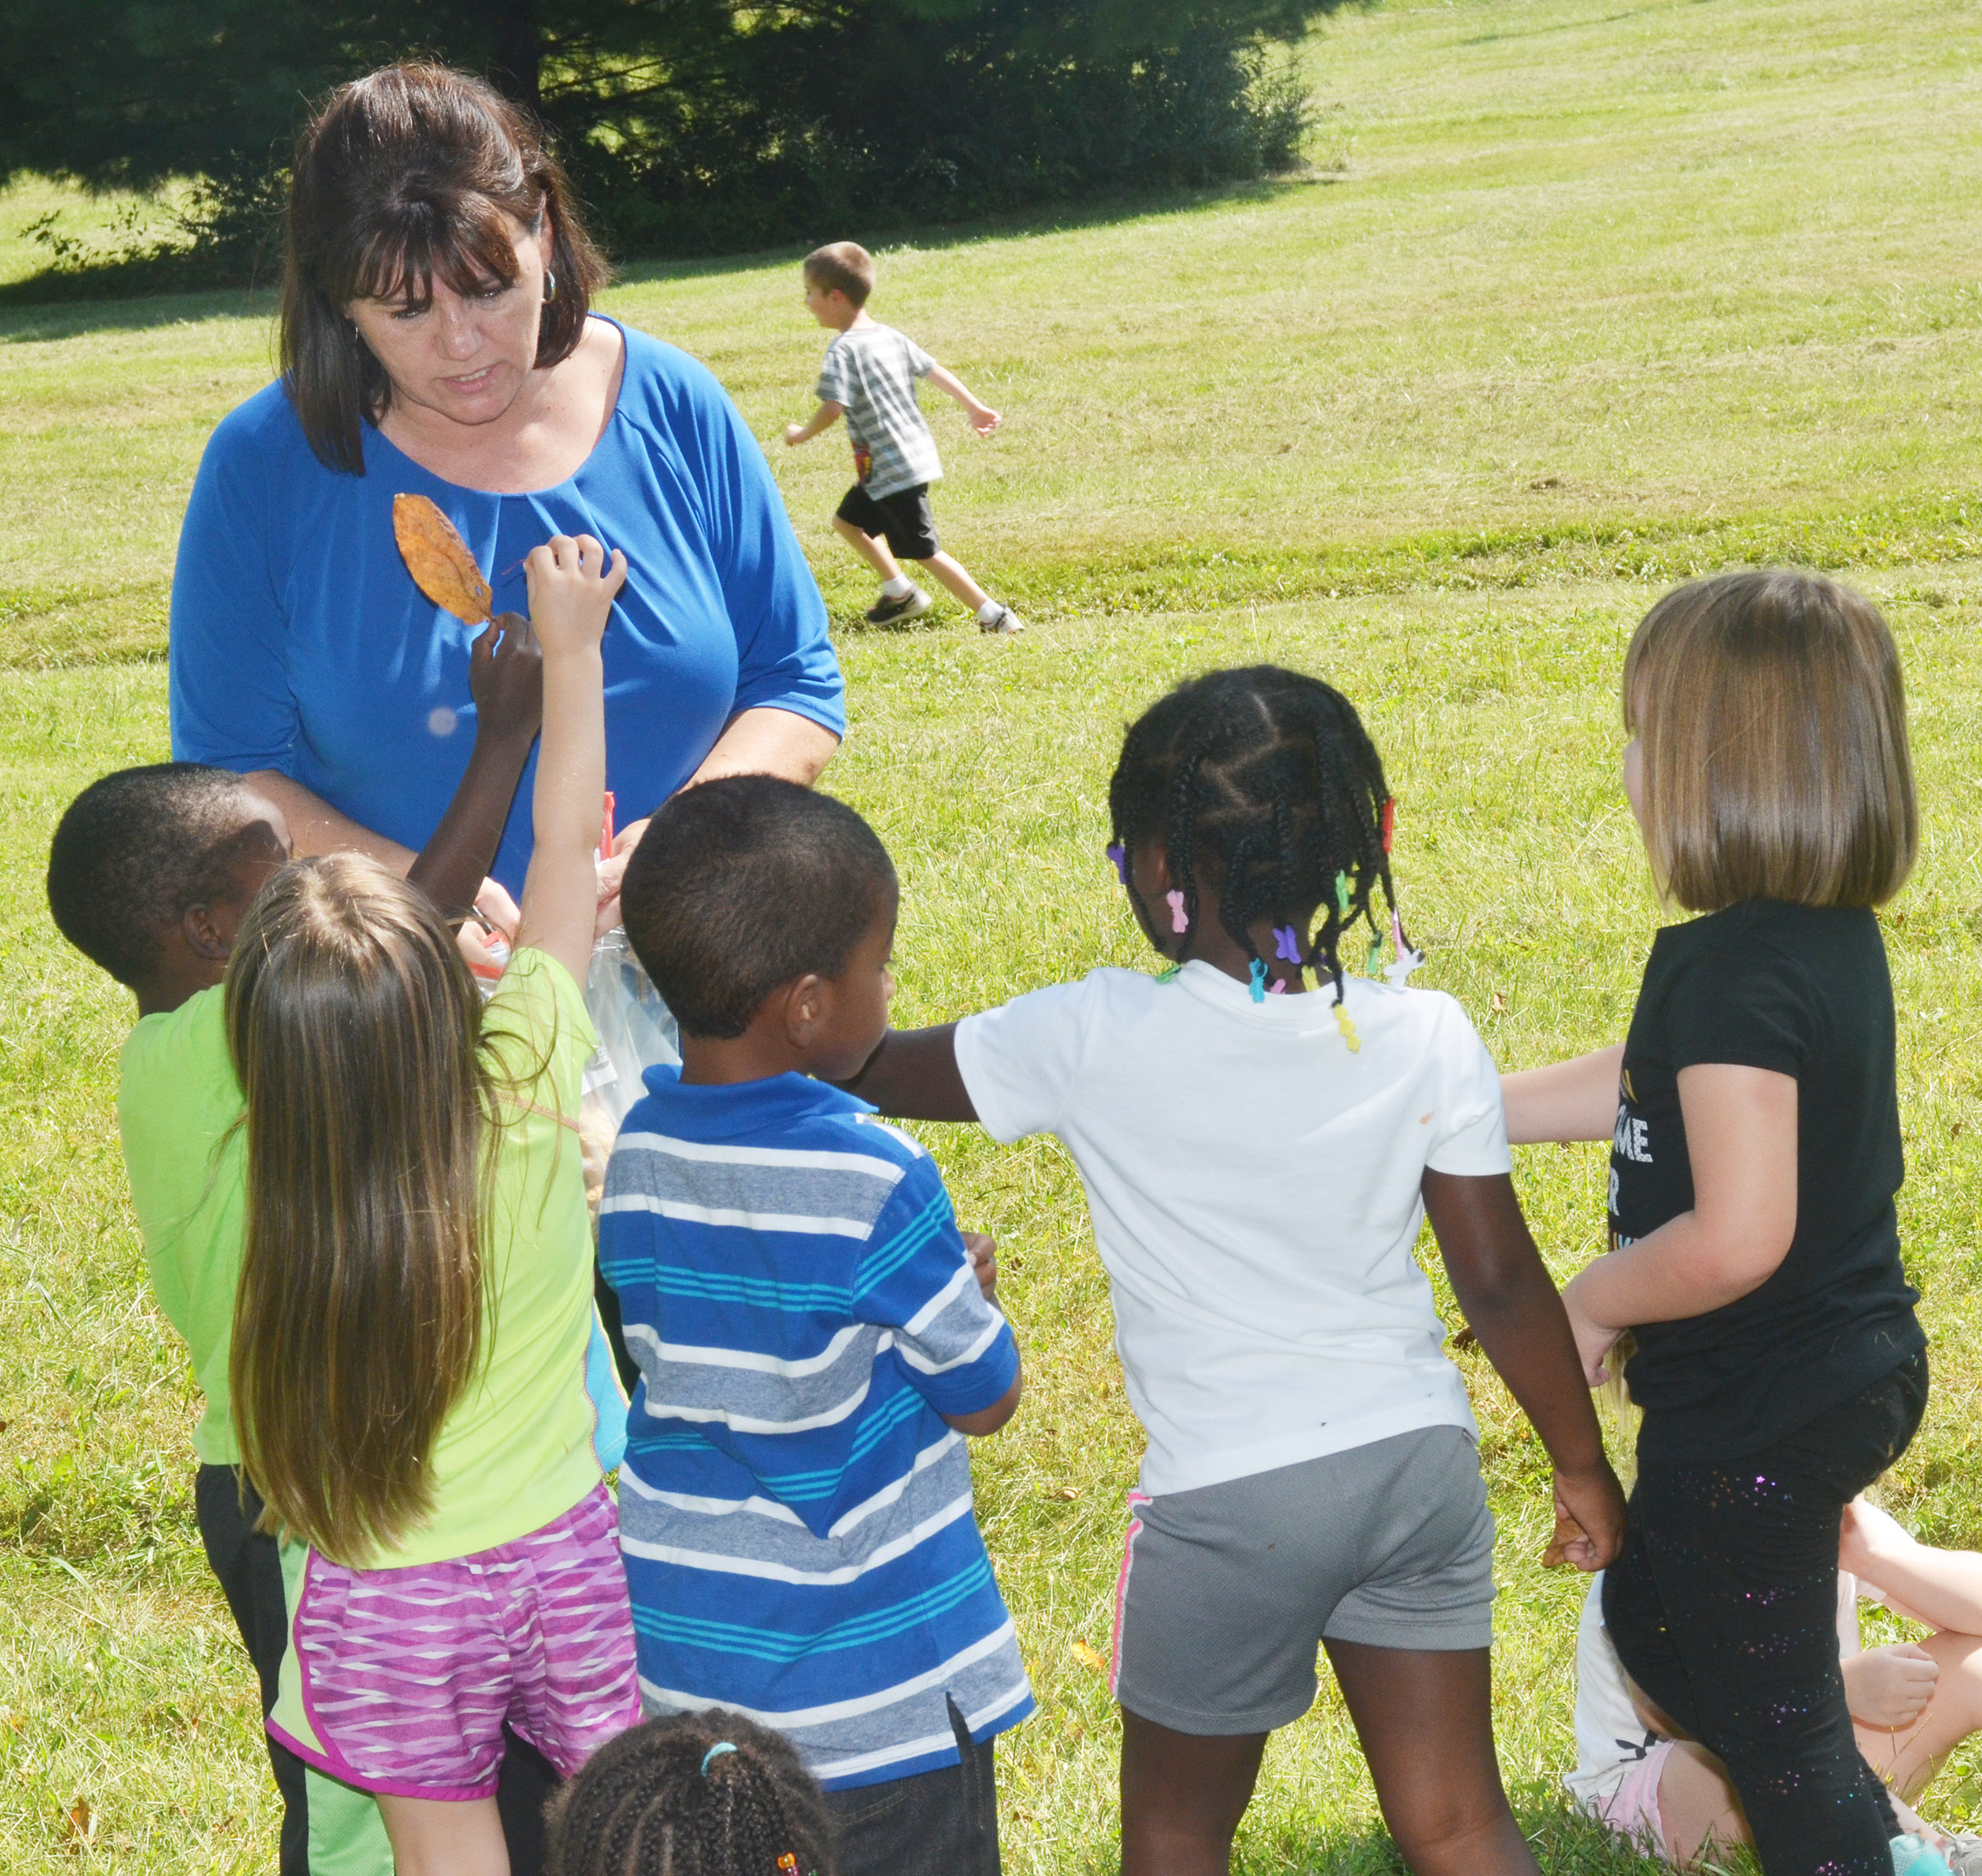 CES preschool teacher Denise Spencer collects leaves from her students during their nature walk.